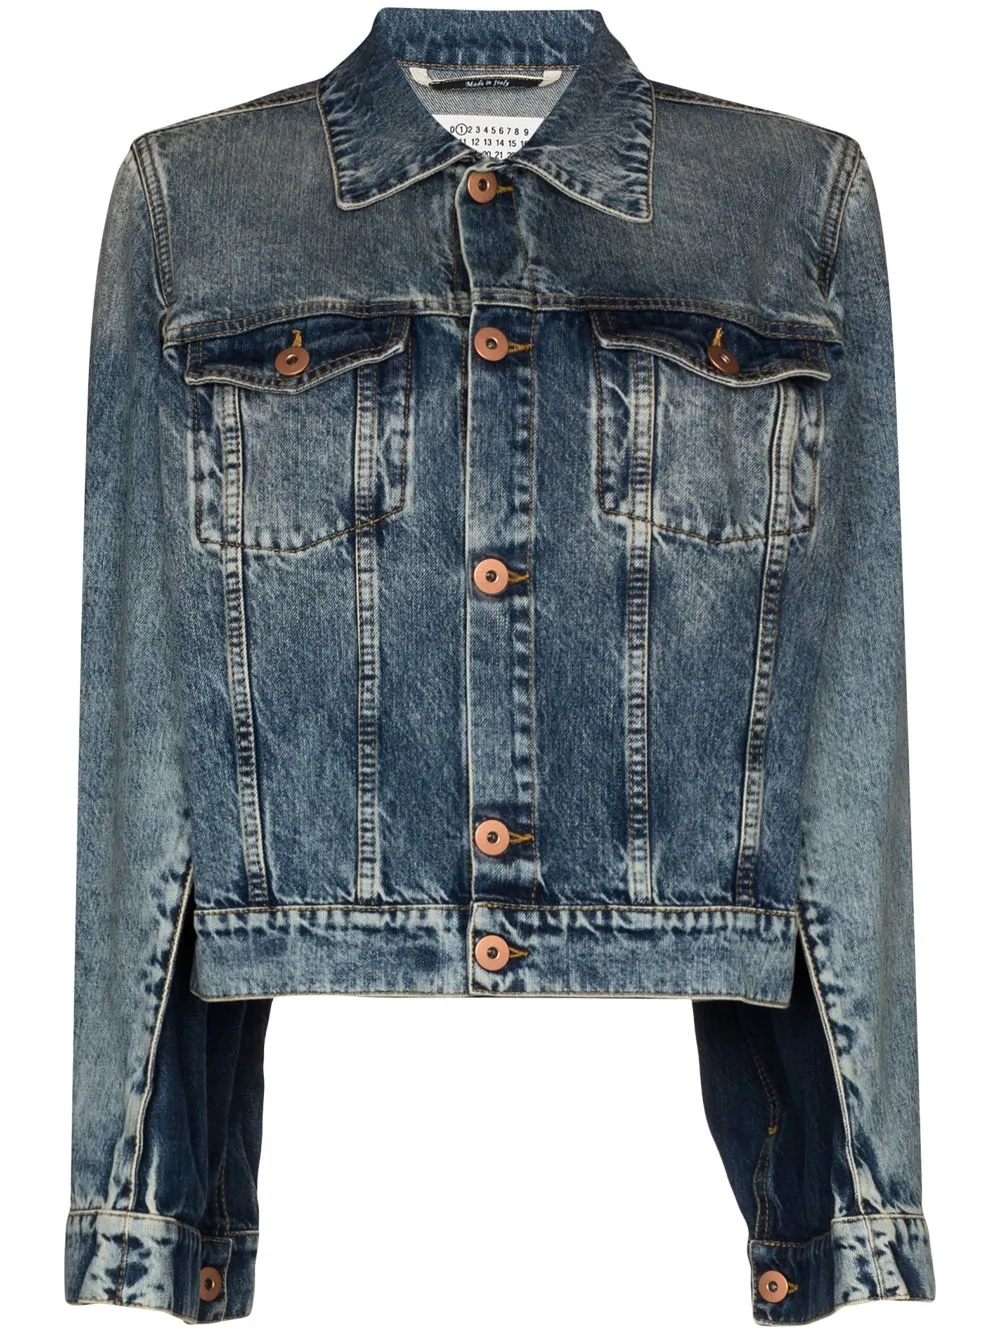 FARFETCH: 60% OFF Maison Margiela spliced denim jacket